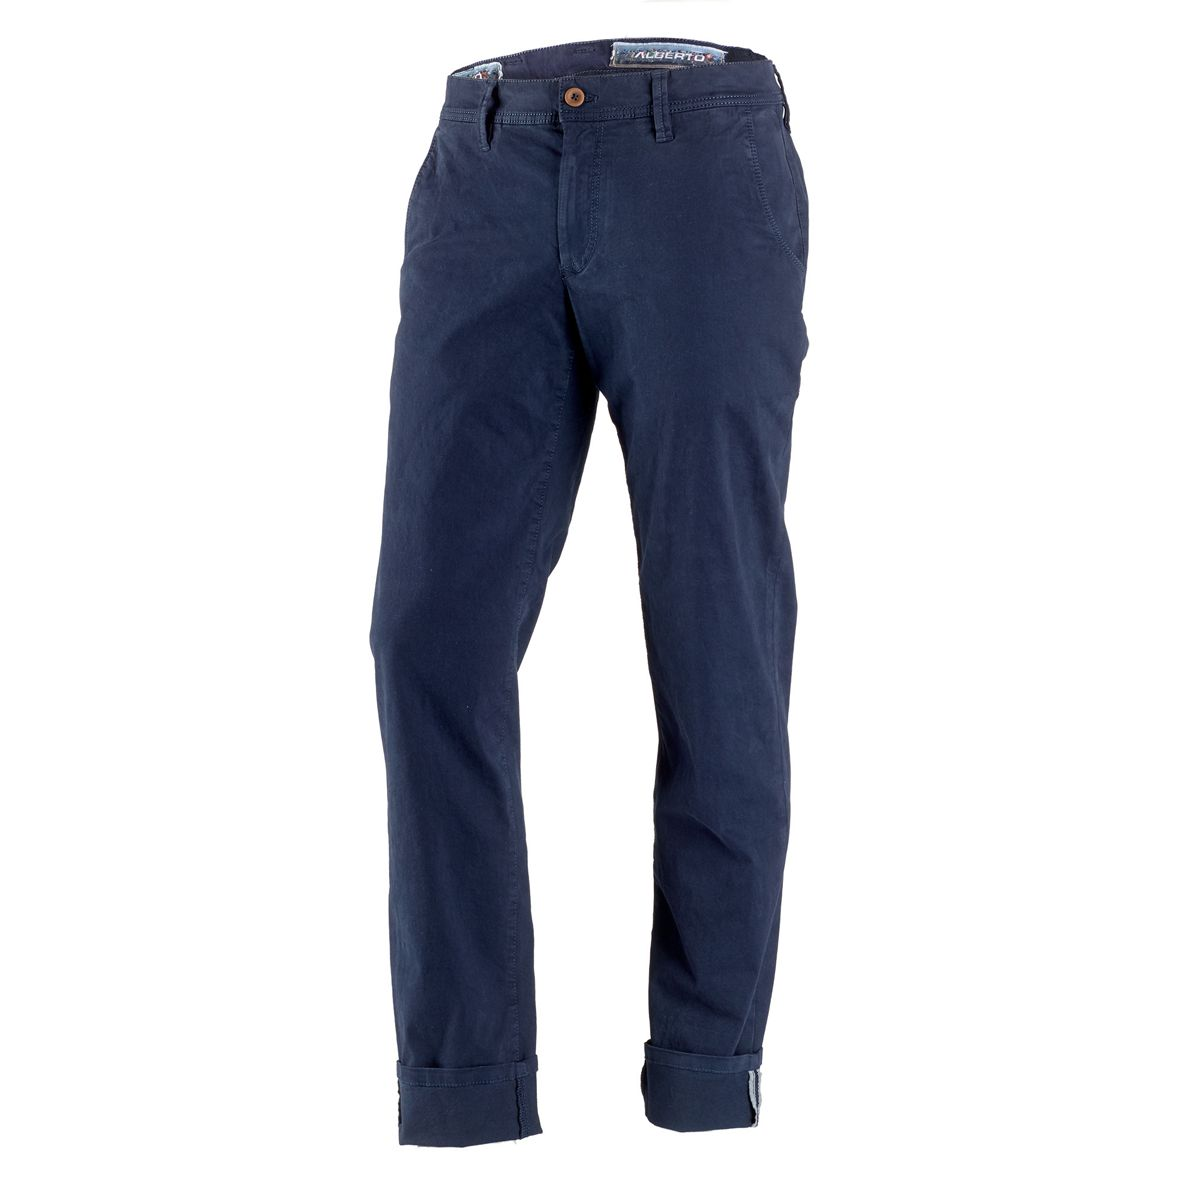 BIKE Chino Superfit Twill trousers